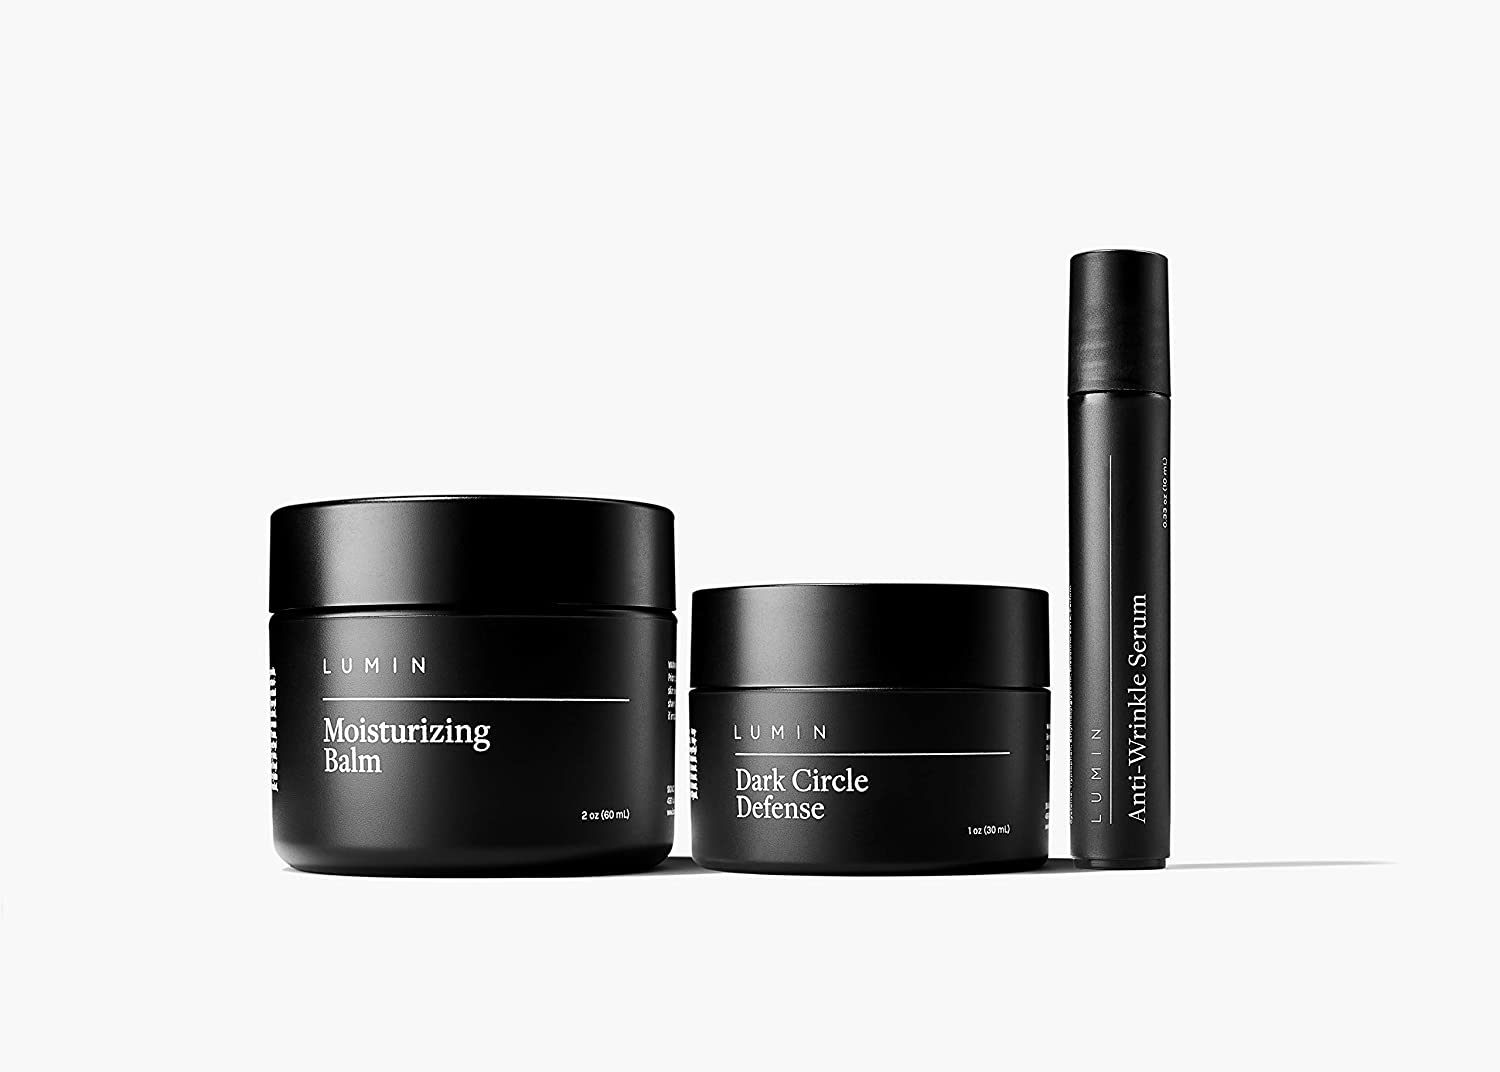 Age Management Collection for Men: 3 Piece Kit to Help with Clogged Pores, Dark Circles, Fine Lines, Wrinkles, Dryness, and Acne Scars - Achieve Your Best Look with Lumin